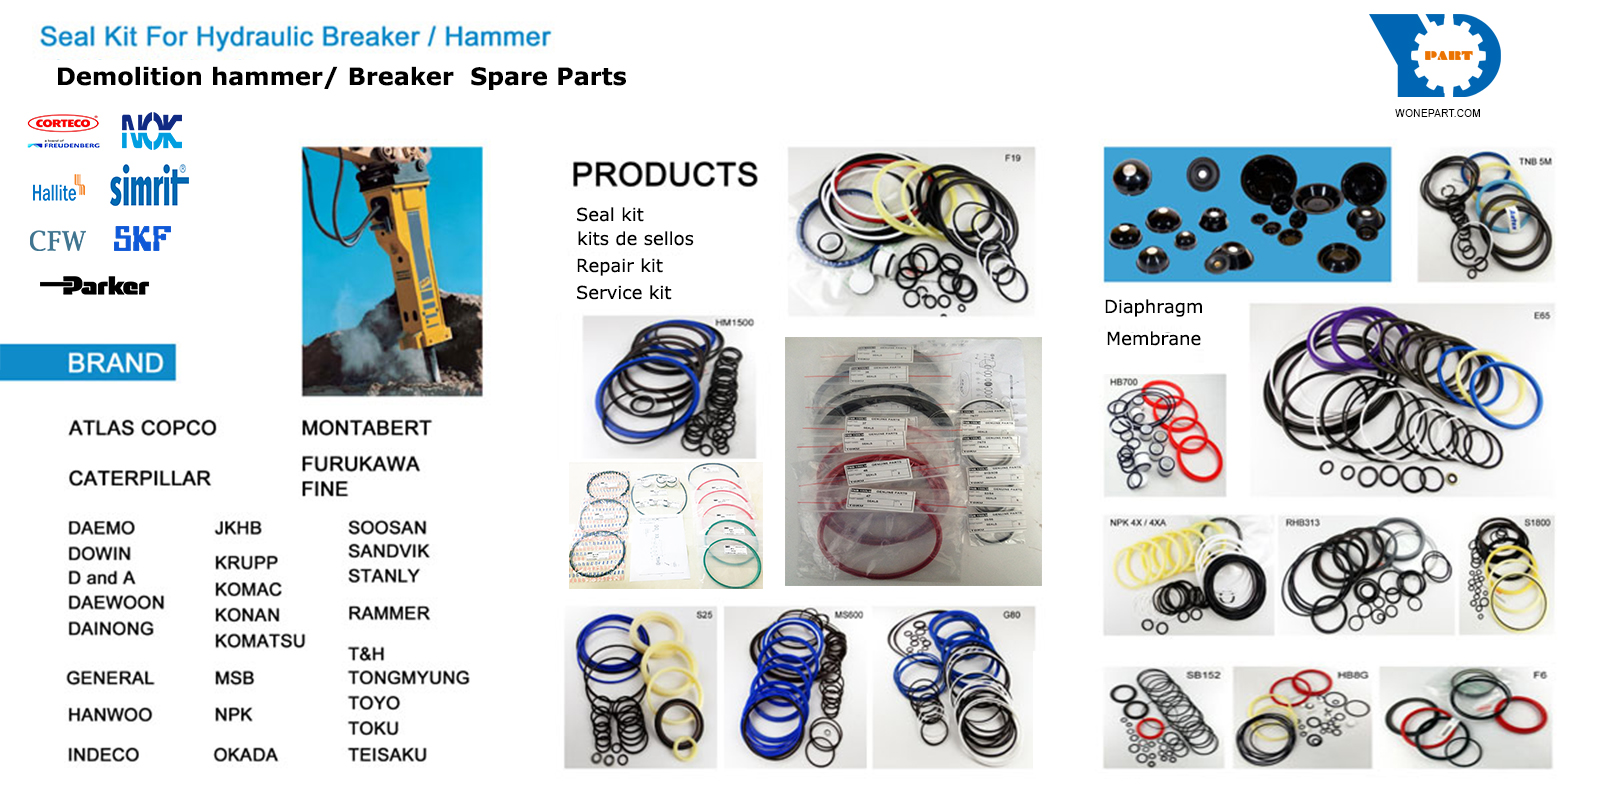 Demolition-hammer-breaker-spare-parts